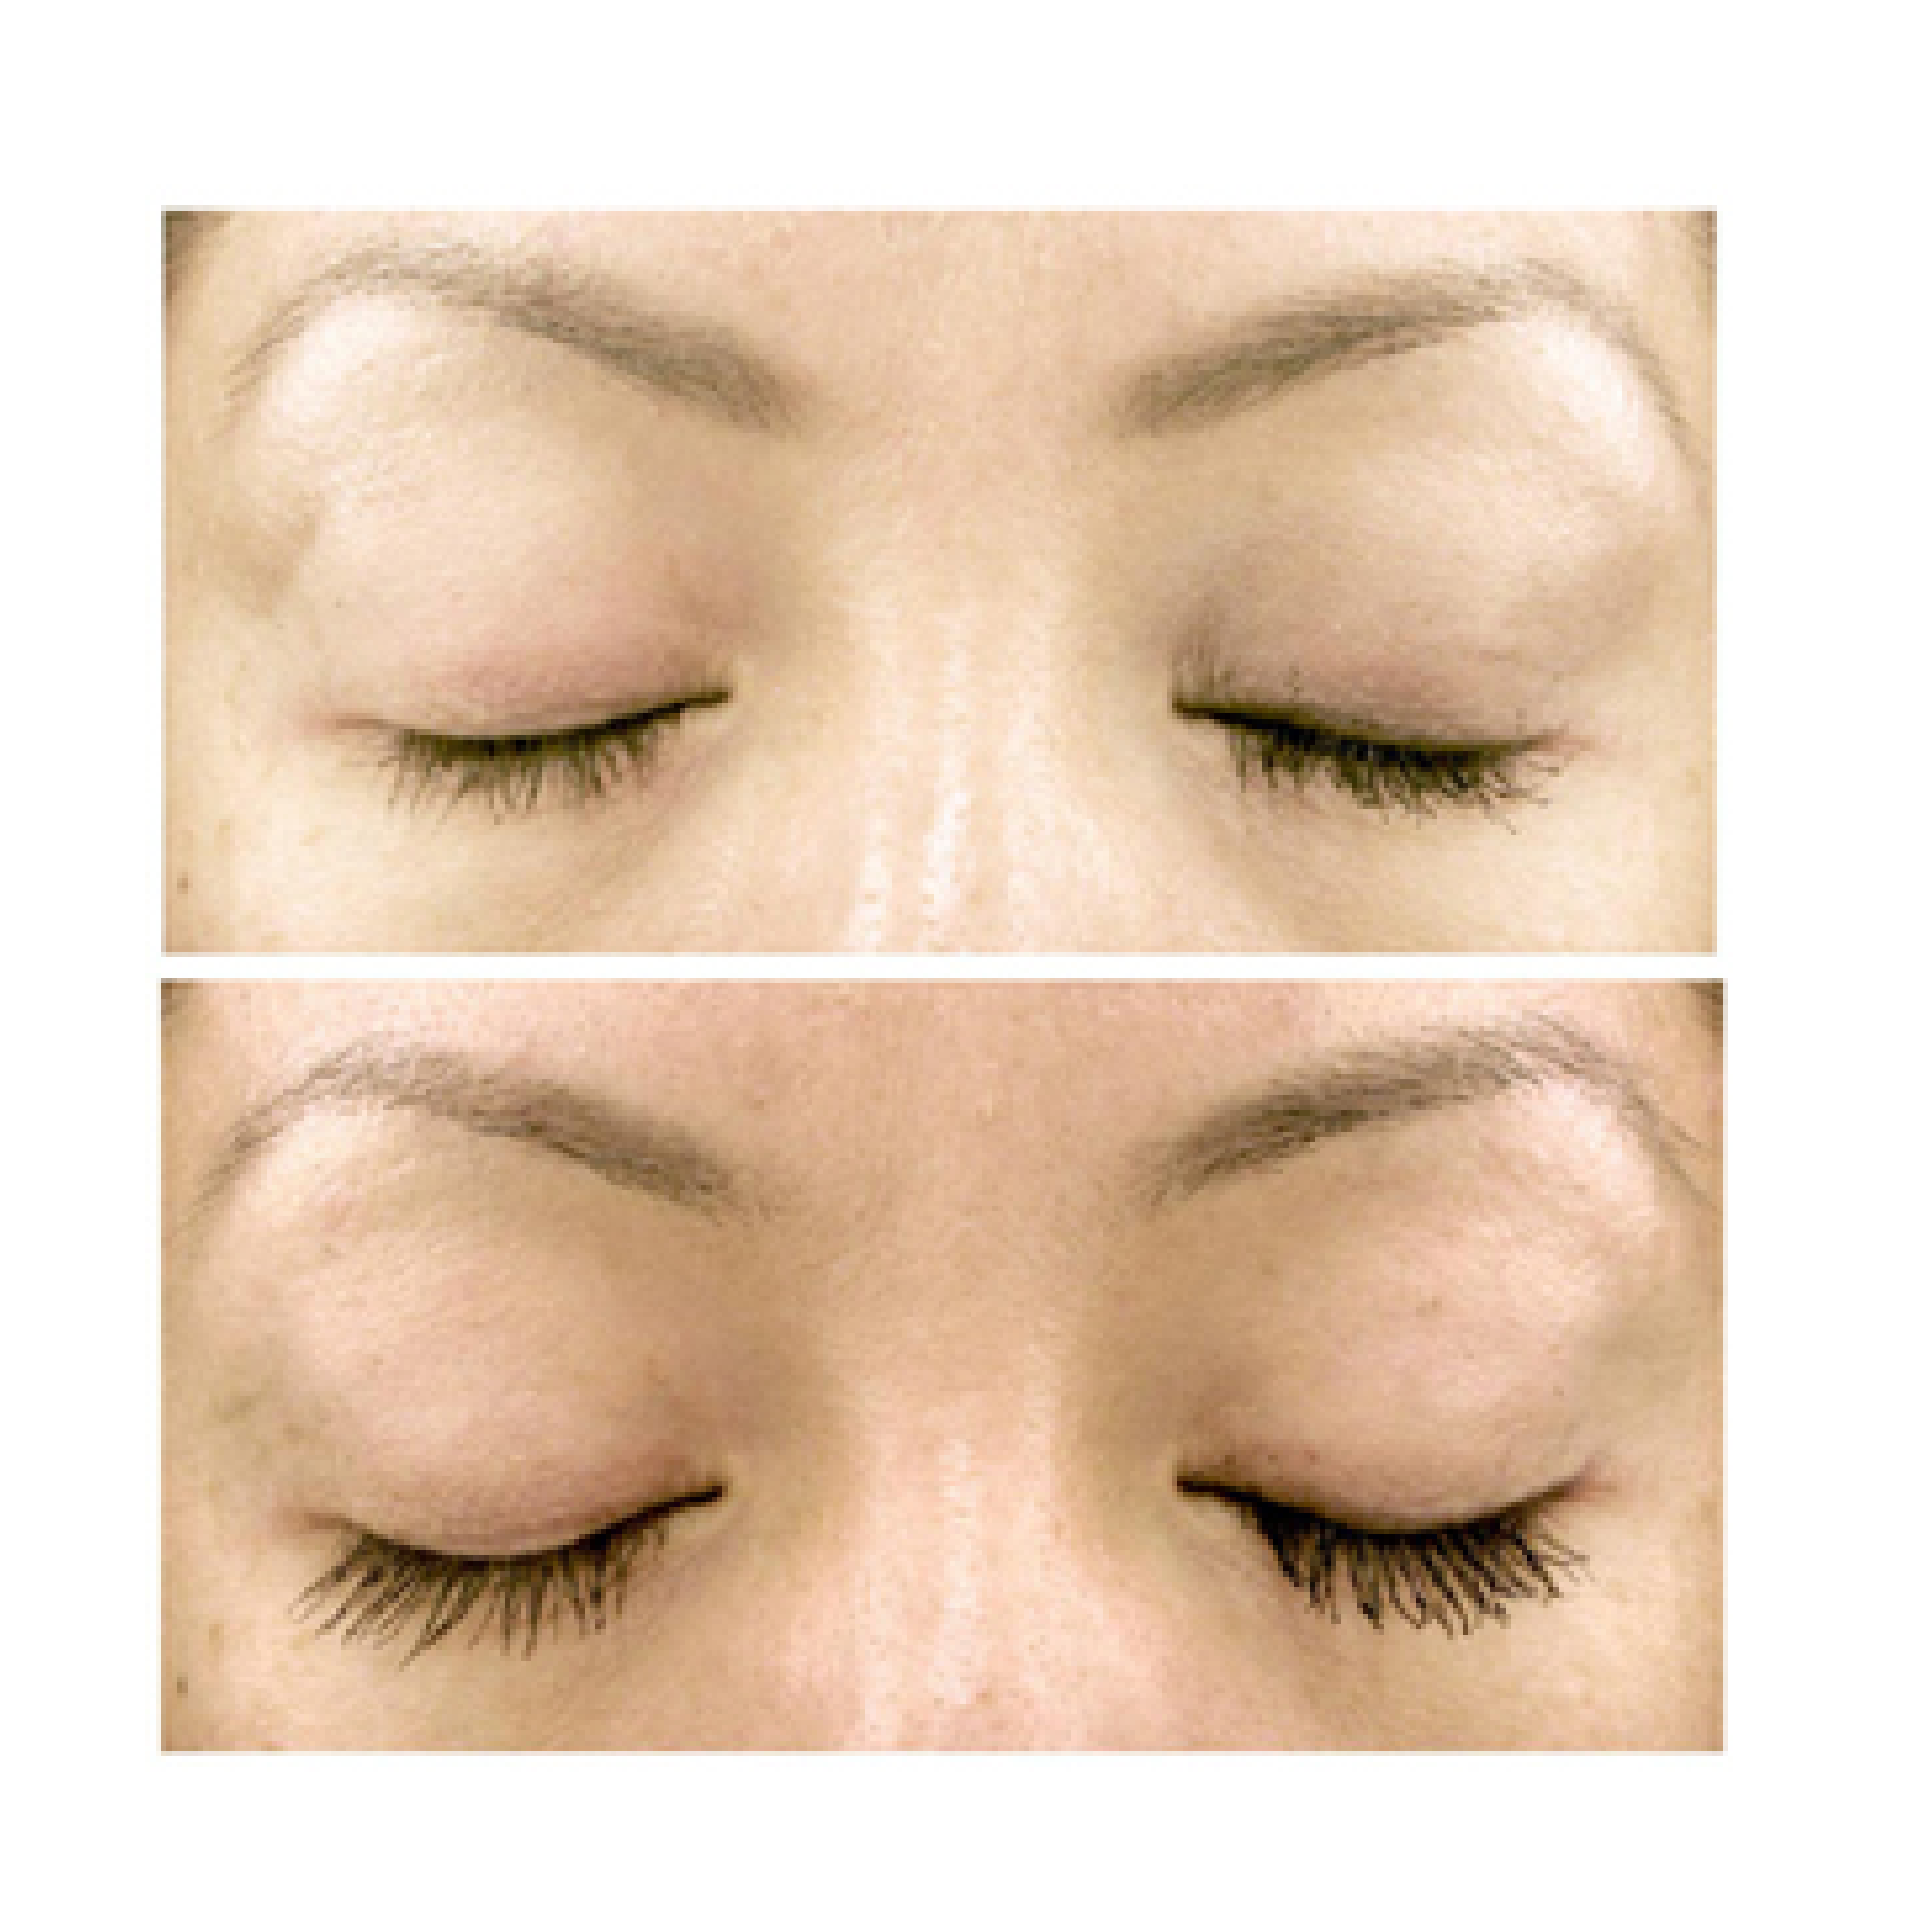 36deb5f1545 AQ Skin Solutions GF Lash & Brow - One of our Top Rated Eyelash serums - Dermacare  Direct Skin Care Blog